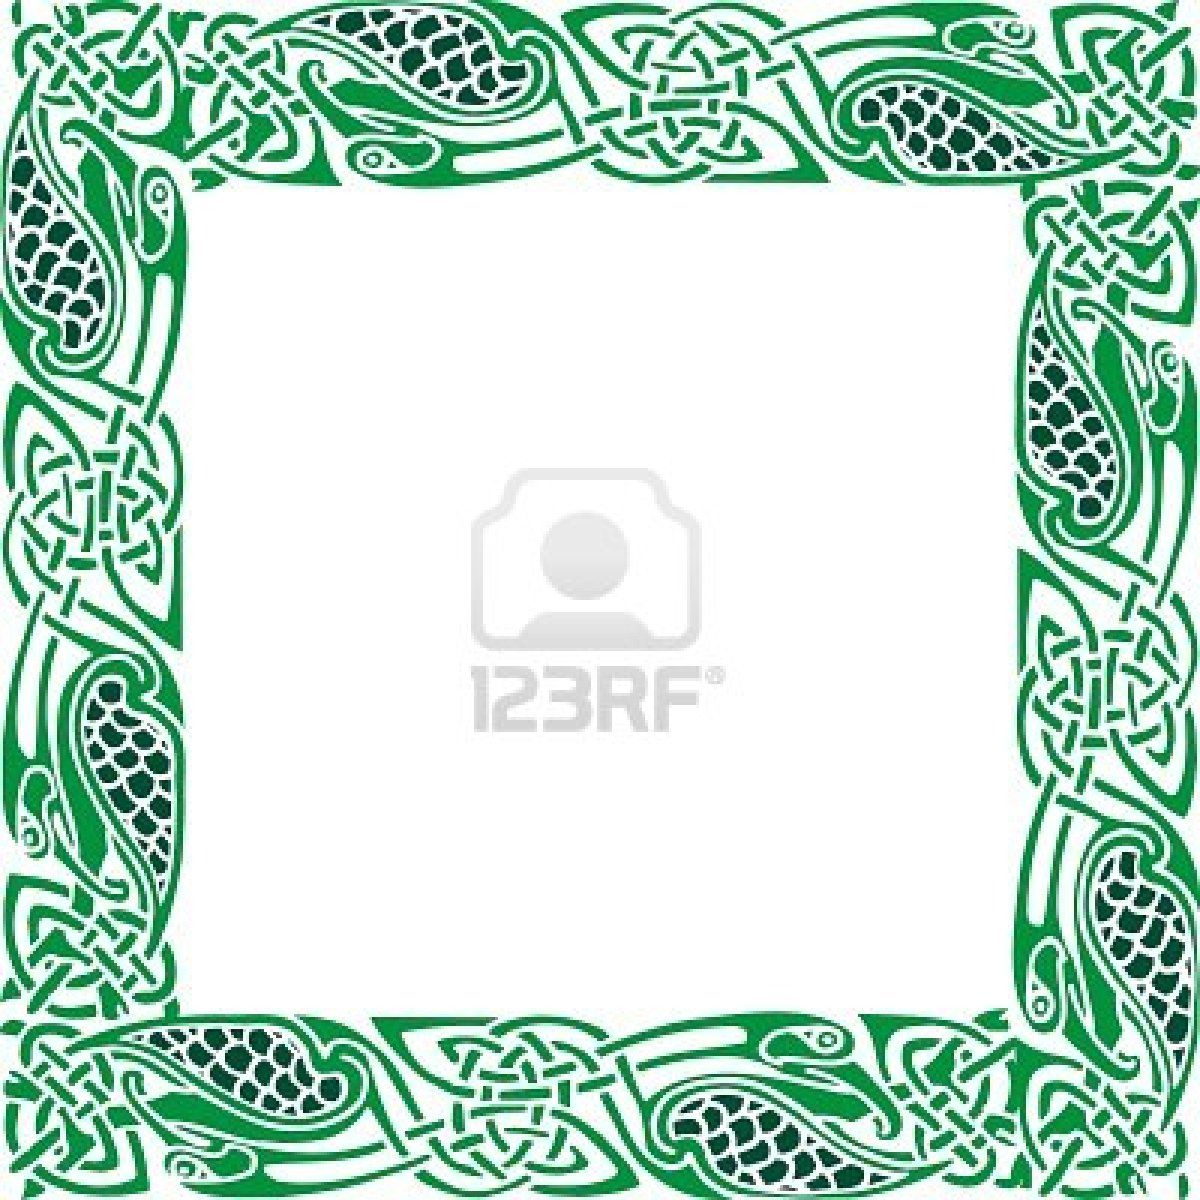 Owl greeting card set welsh artist jen delyth celtic art studio - Abstract Celtic Patterns With Flower Designs On The Border Stock Photo